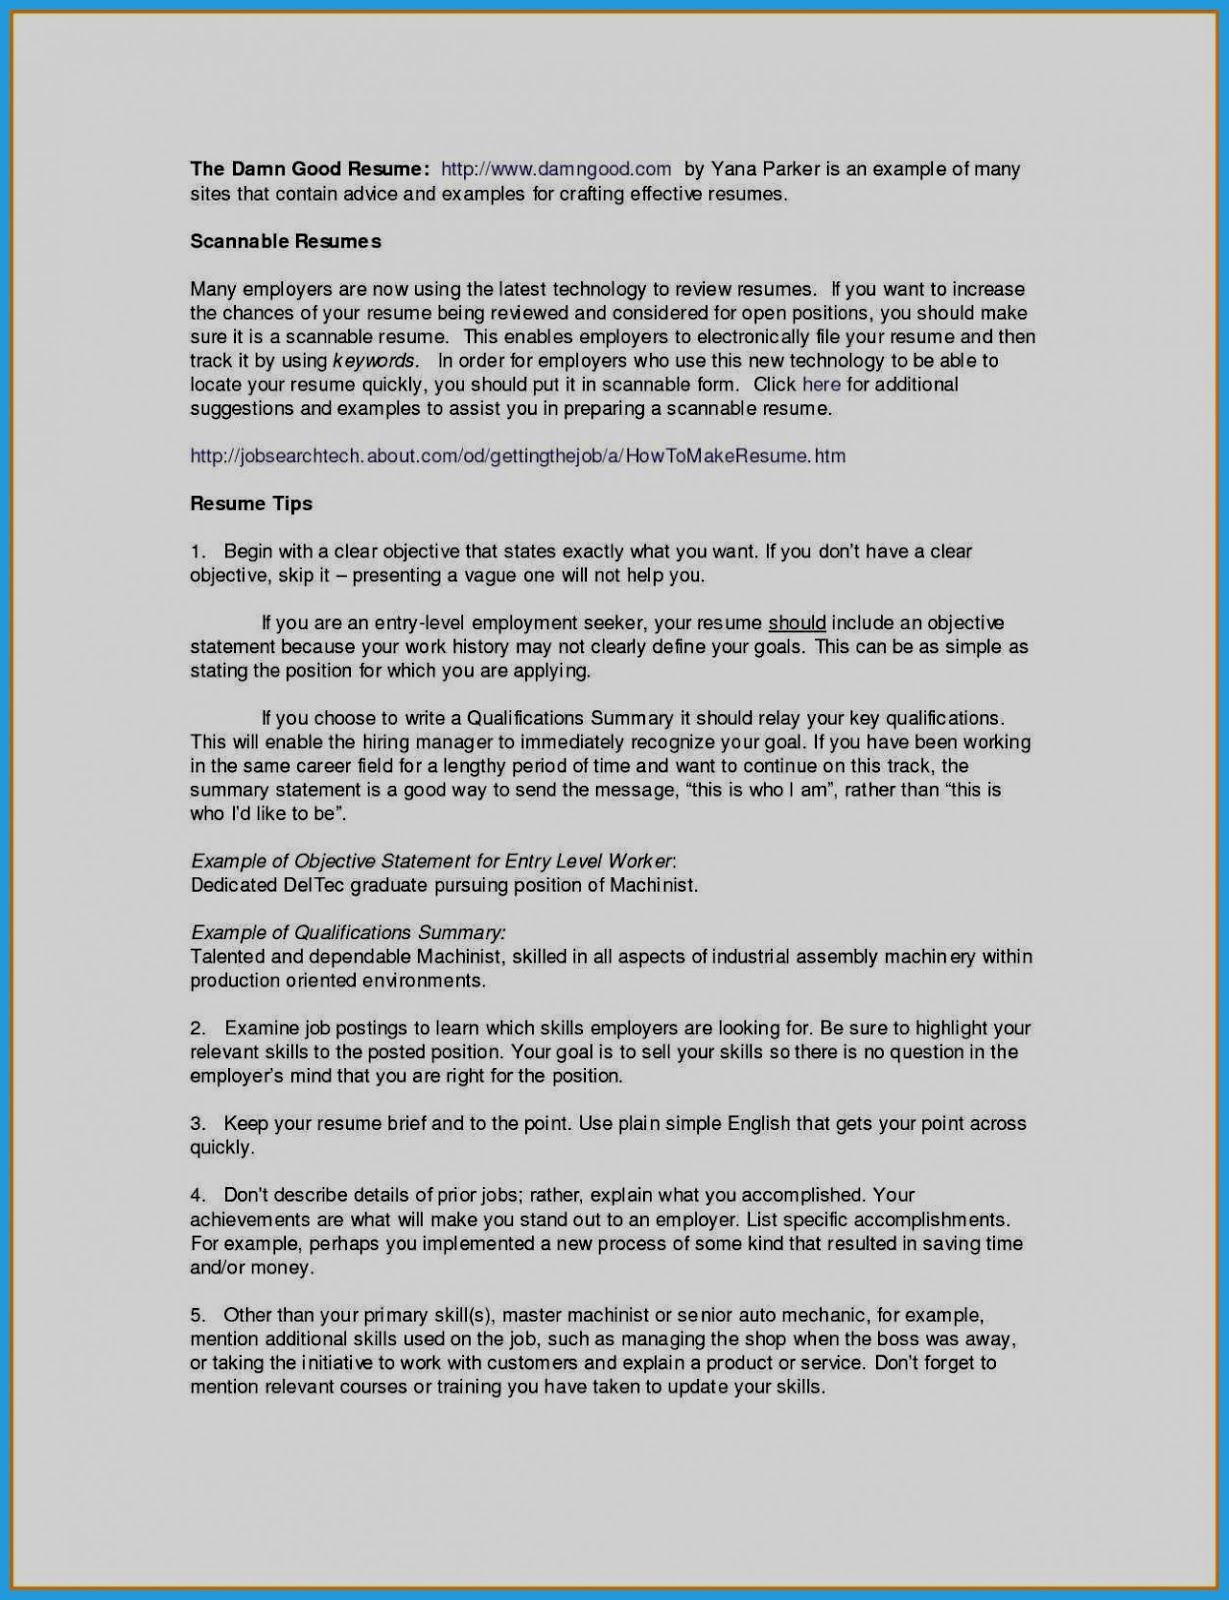 Job Resume Layout Job Resume Outlines 2019 Job Resume Forms Job Resume Structure First Job R Executive Resume Template Resume Examples Resume Template Examples